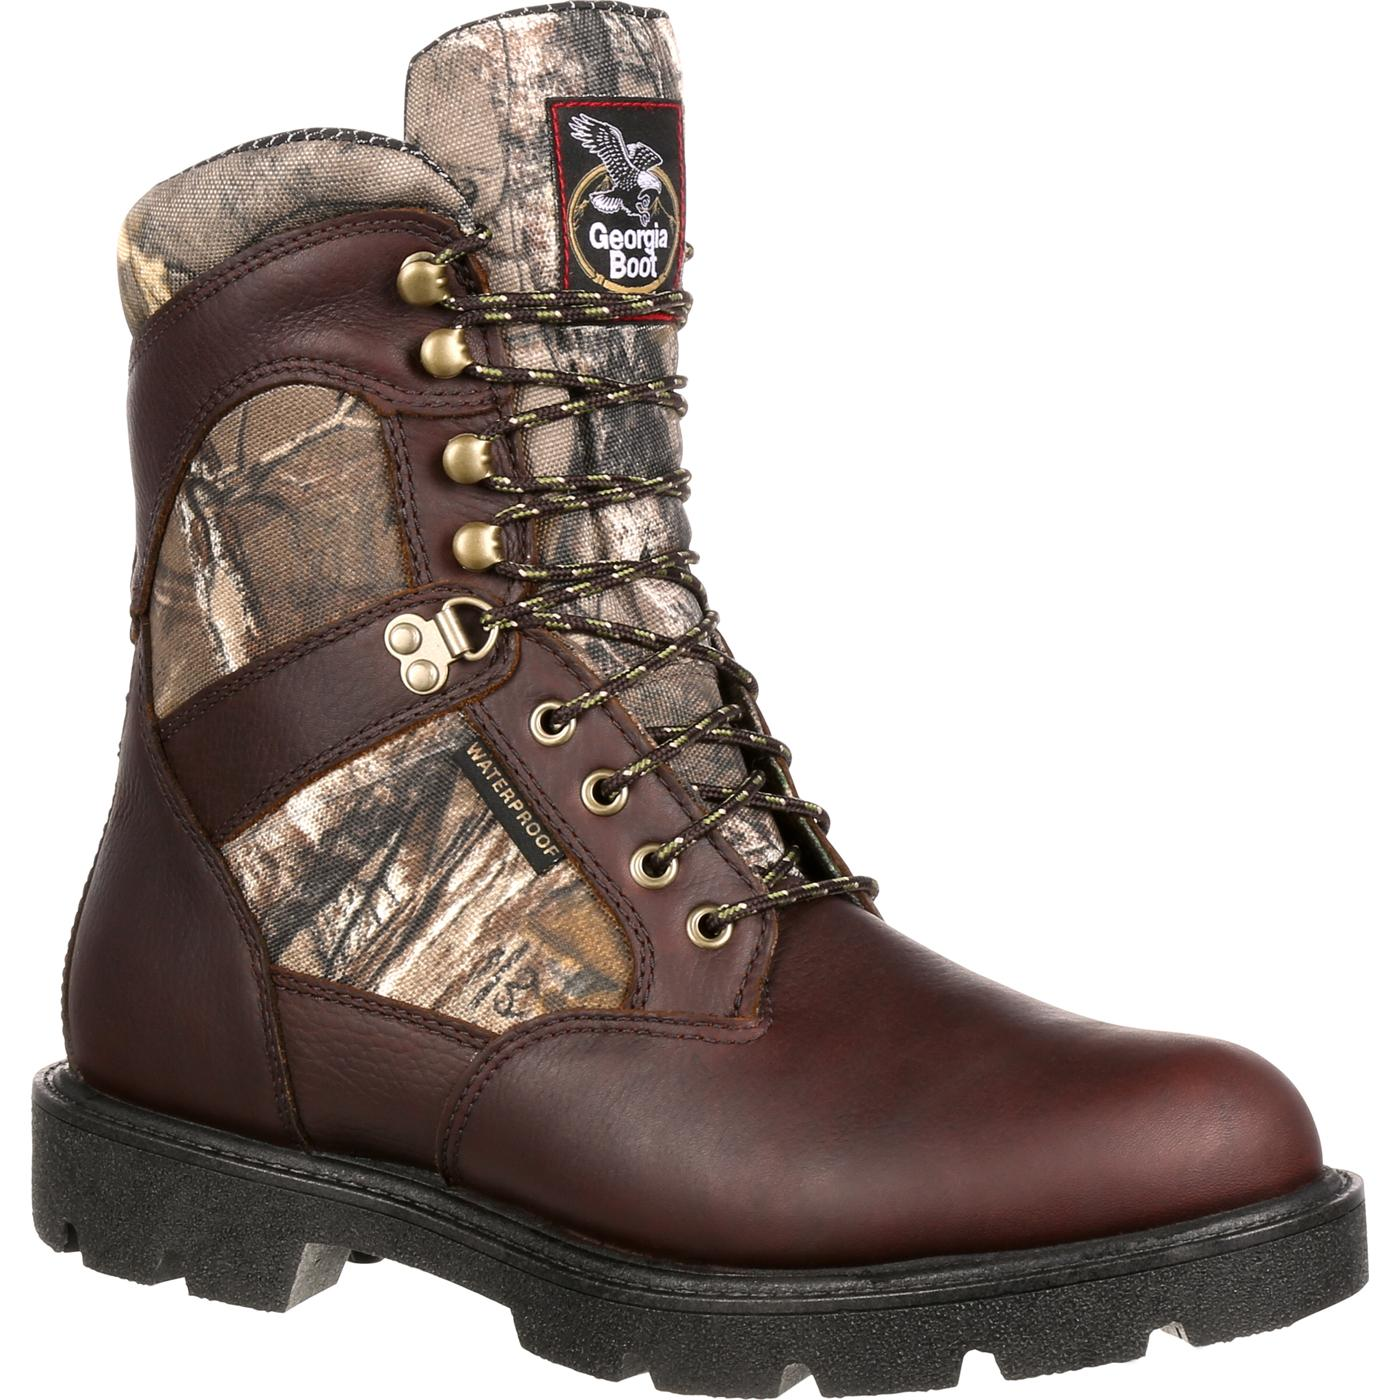 Men's Insulated Work Boots - Georgia Boot Insulated